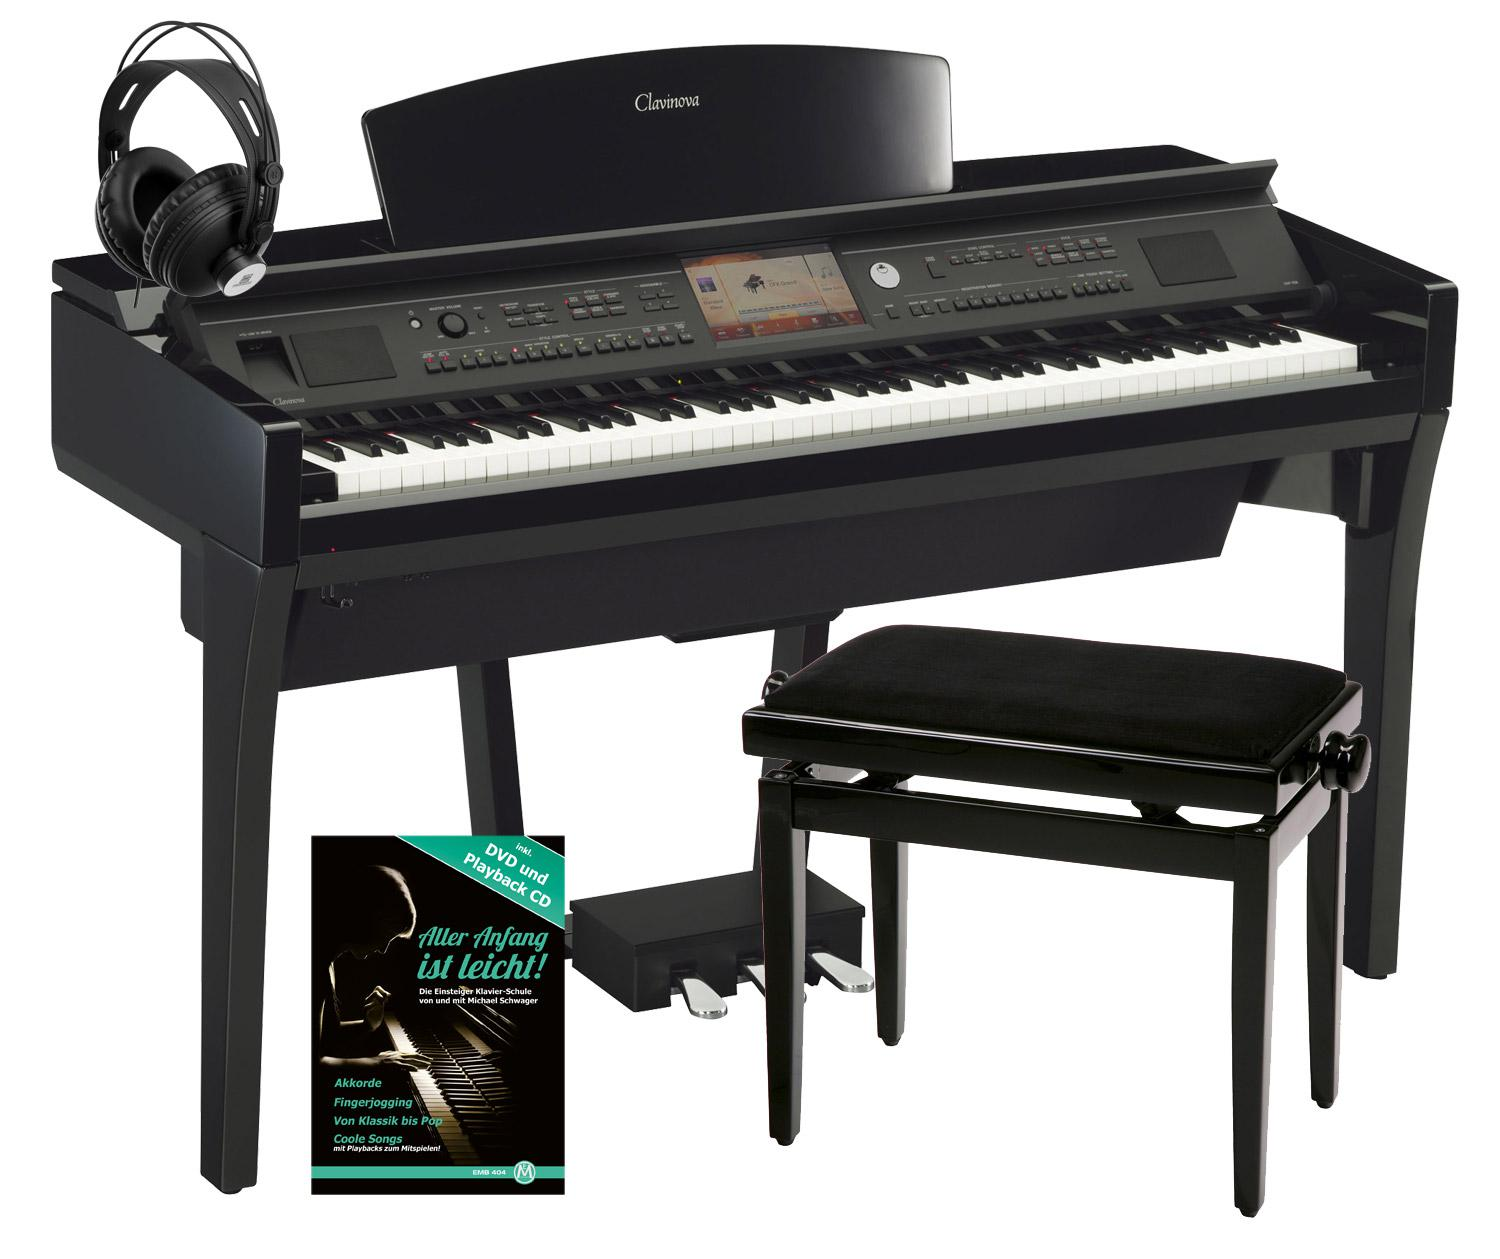 yamaha cvp 709 pe clavinova digitalpiano schwarz hochglanz set inkl bank kopfh rer. Black Bedroom Furniture Sets. Home Design Ideas